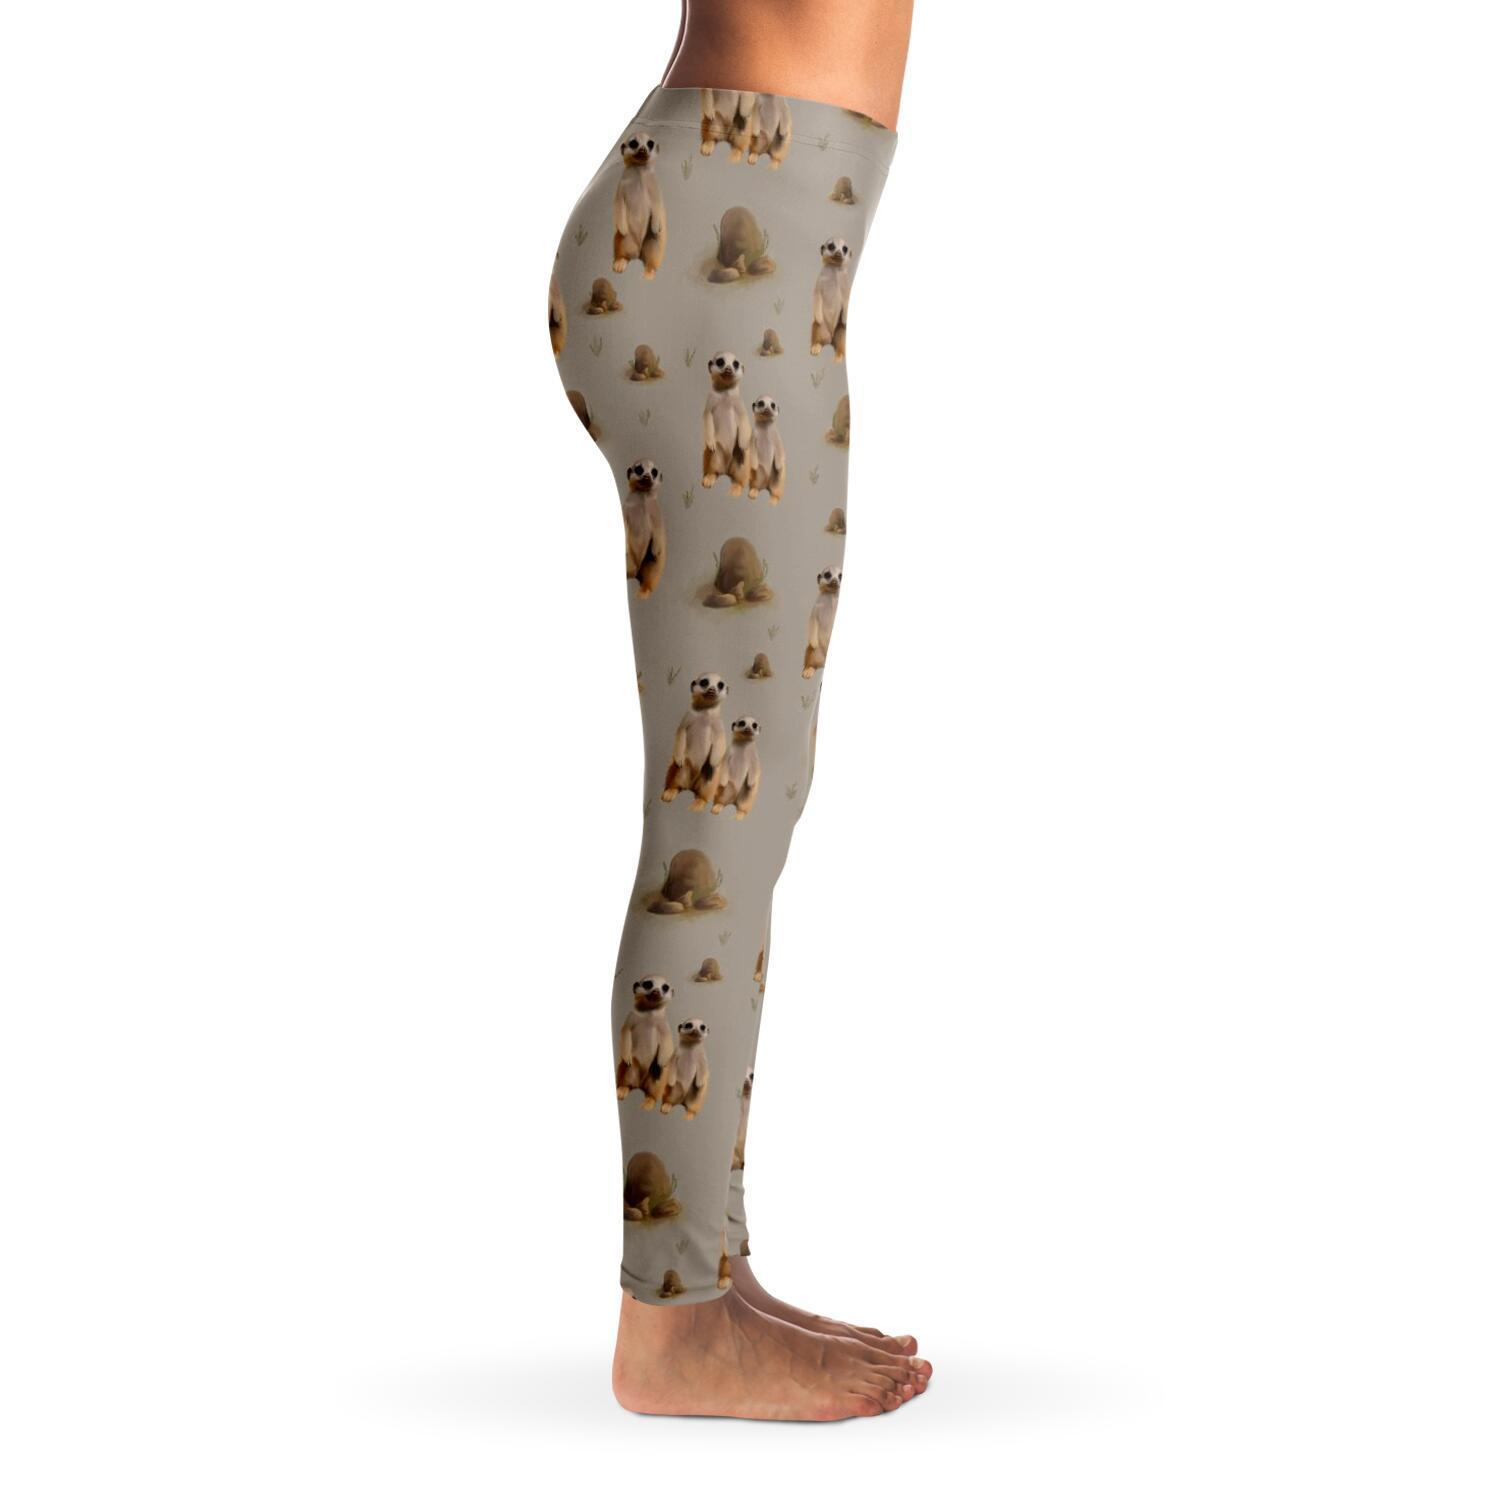 Meerkat Ladies Leggings - Fair Dinkum Fashion